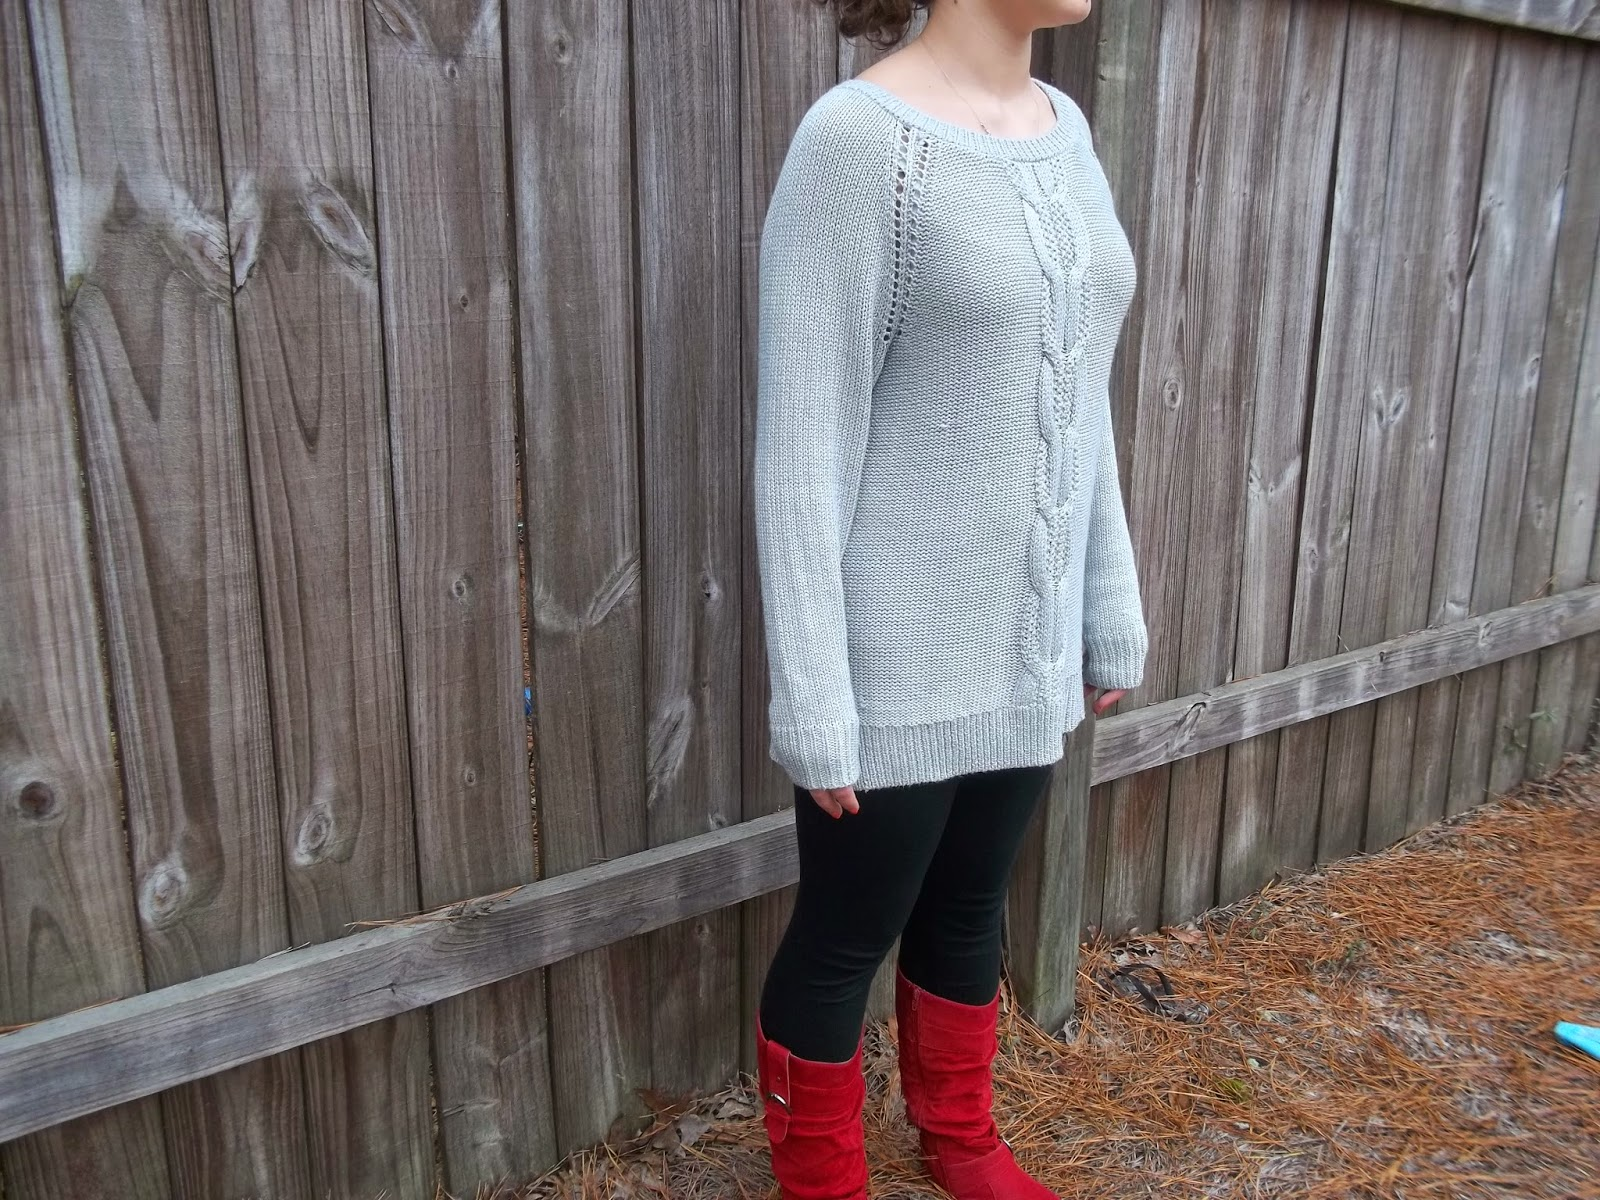 Casual Holiday Outfit. Grey tunic sweater, black leggings, red boots